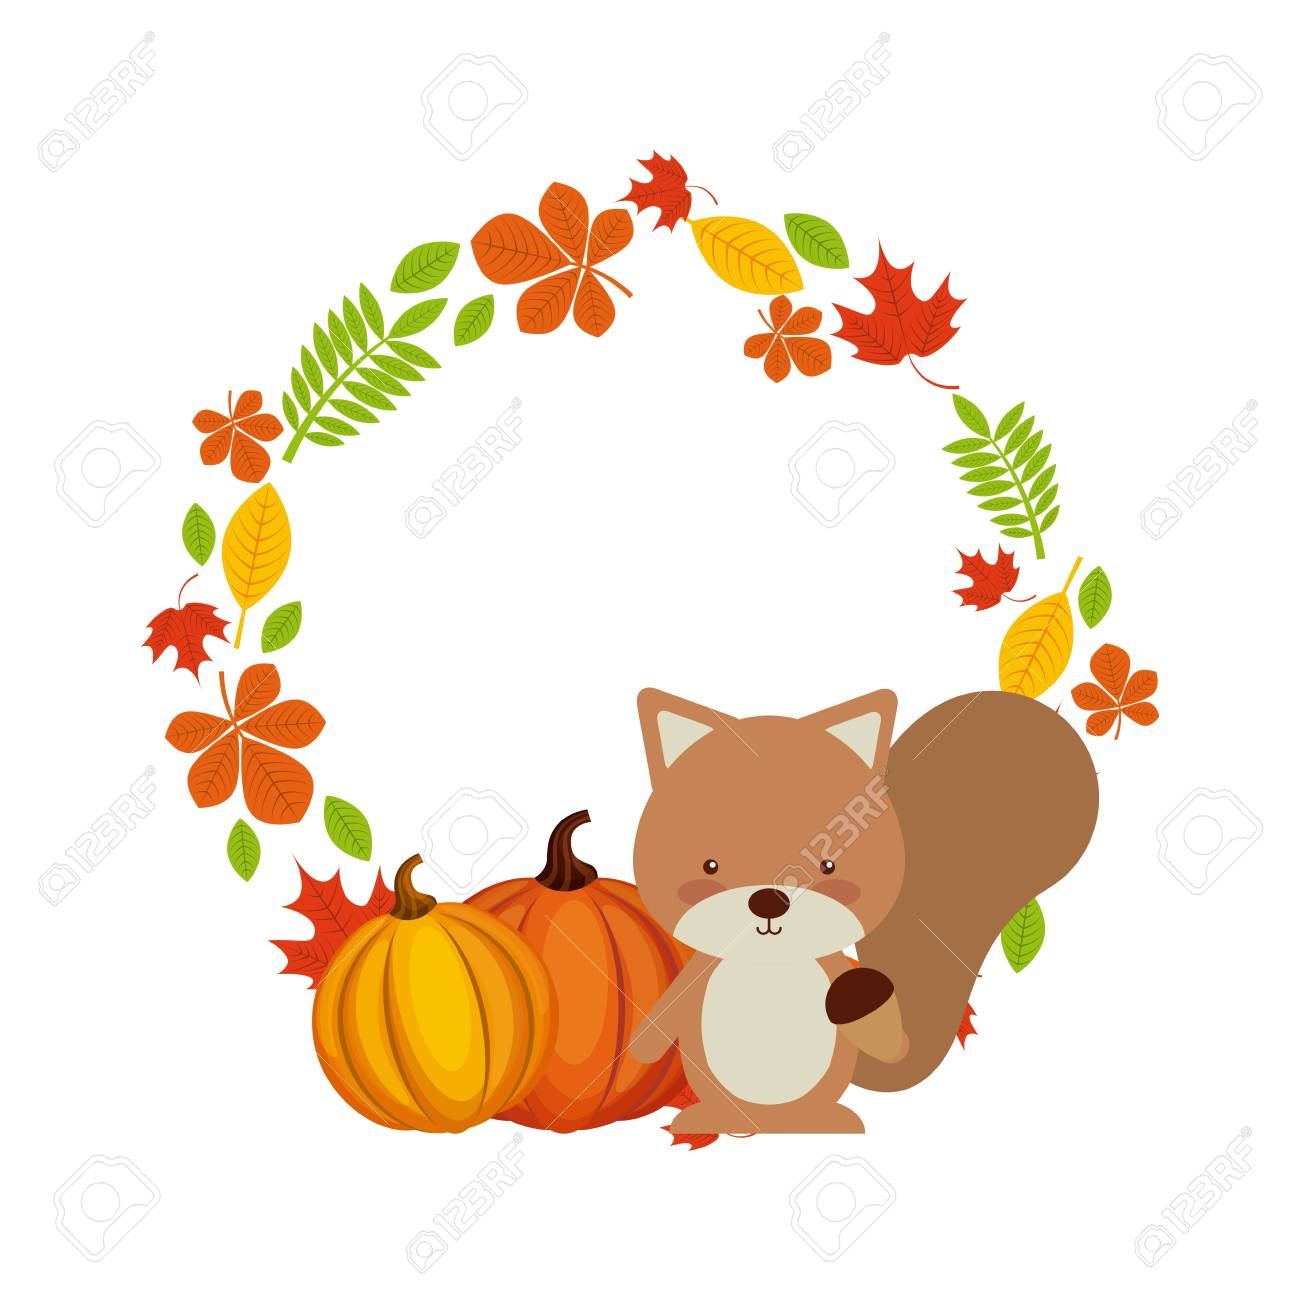 Happy thanksgiving card with wreath of autumn leaves and cute happy thanksgiving card with wreath of autumn leaves and cute chipmunk animal icon colorful design m4hsunfo